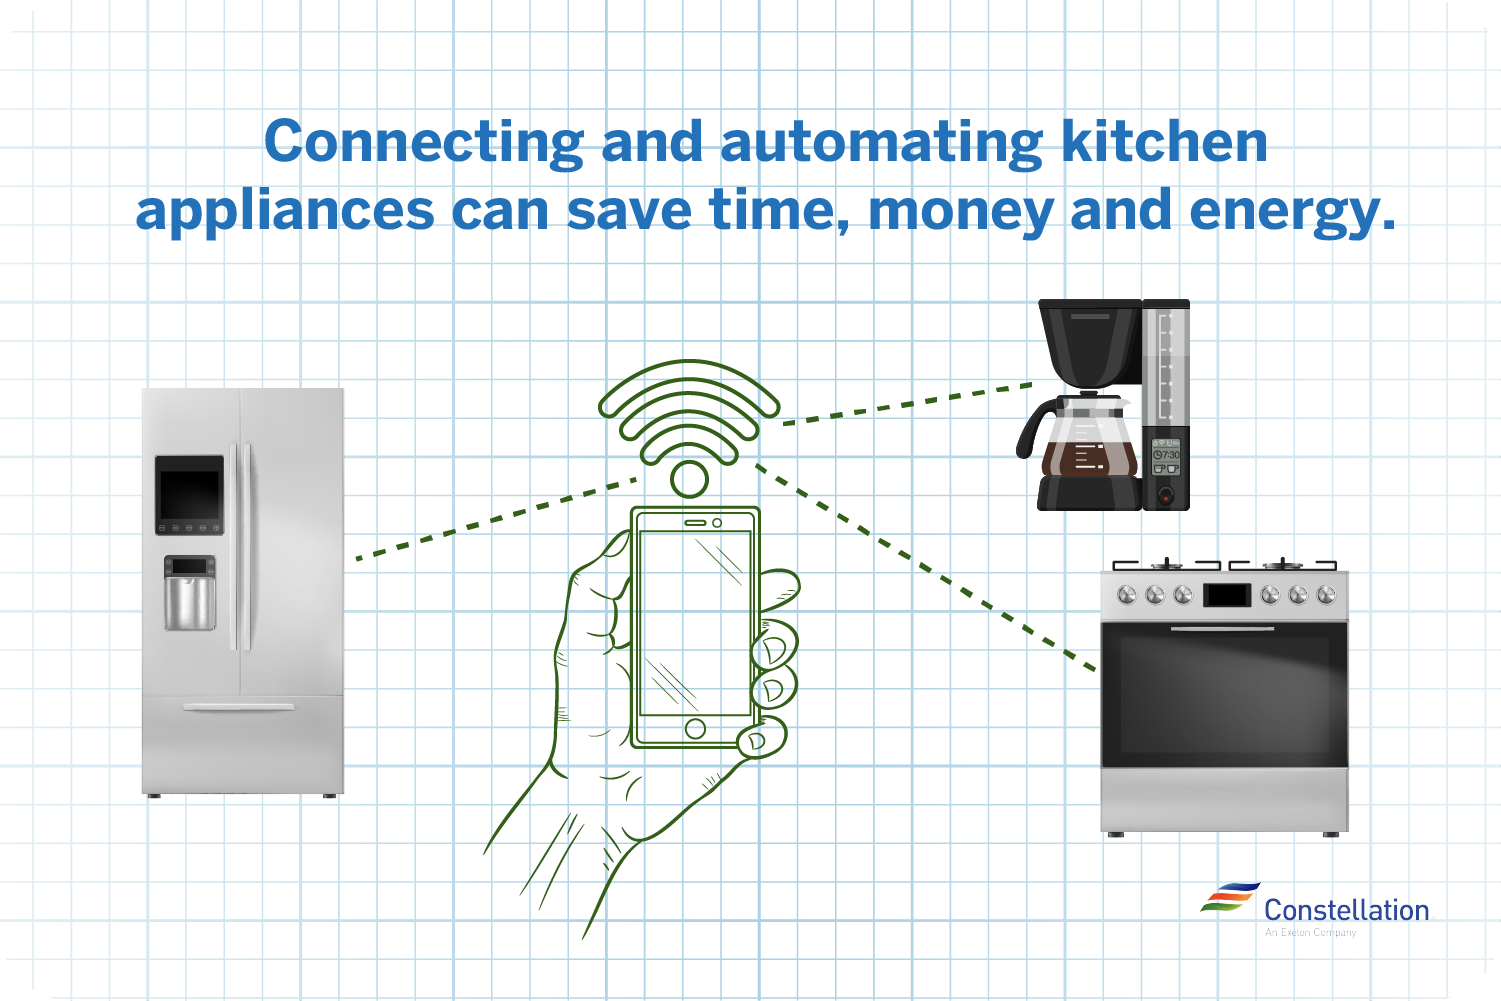 Connecting kitchen appliances saves time, money and energy